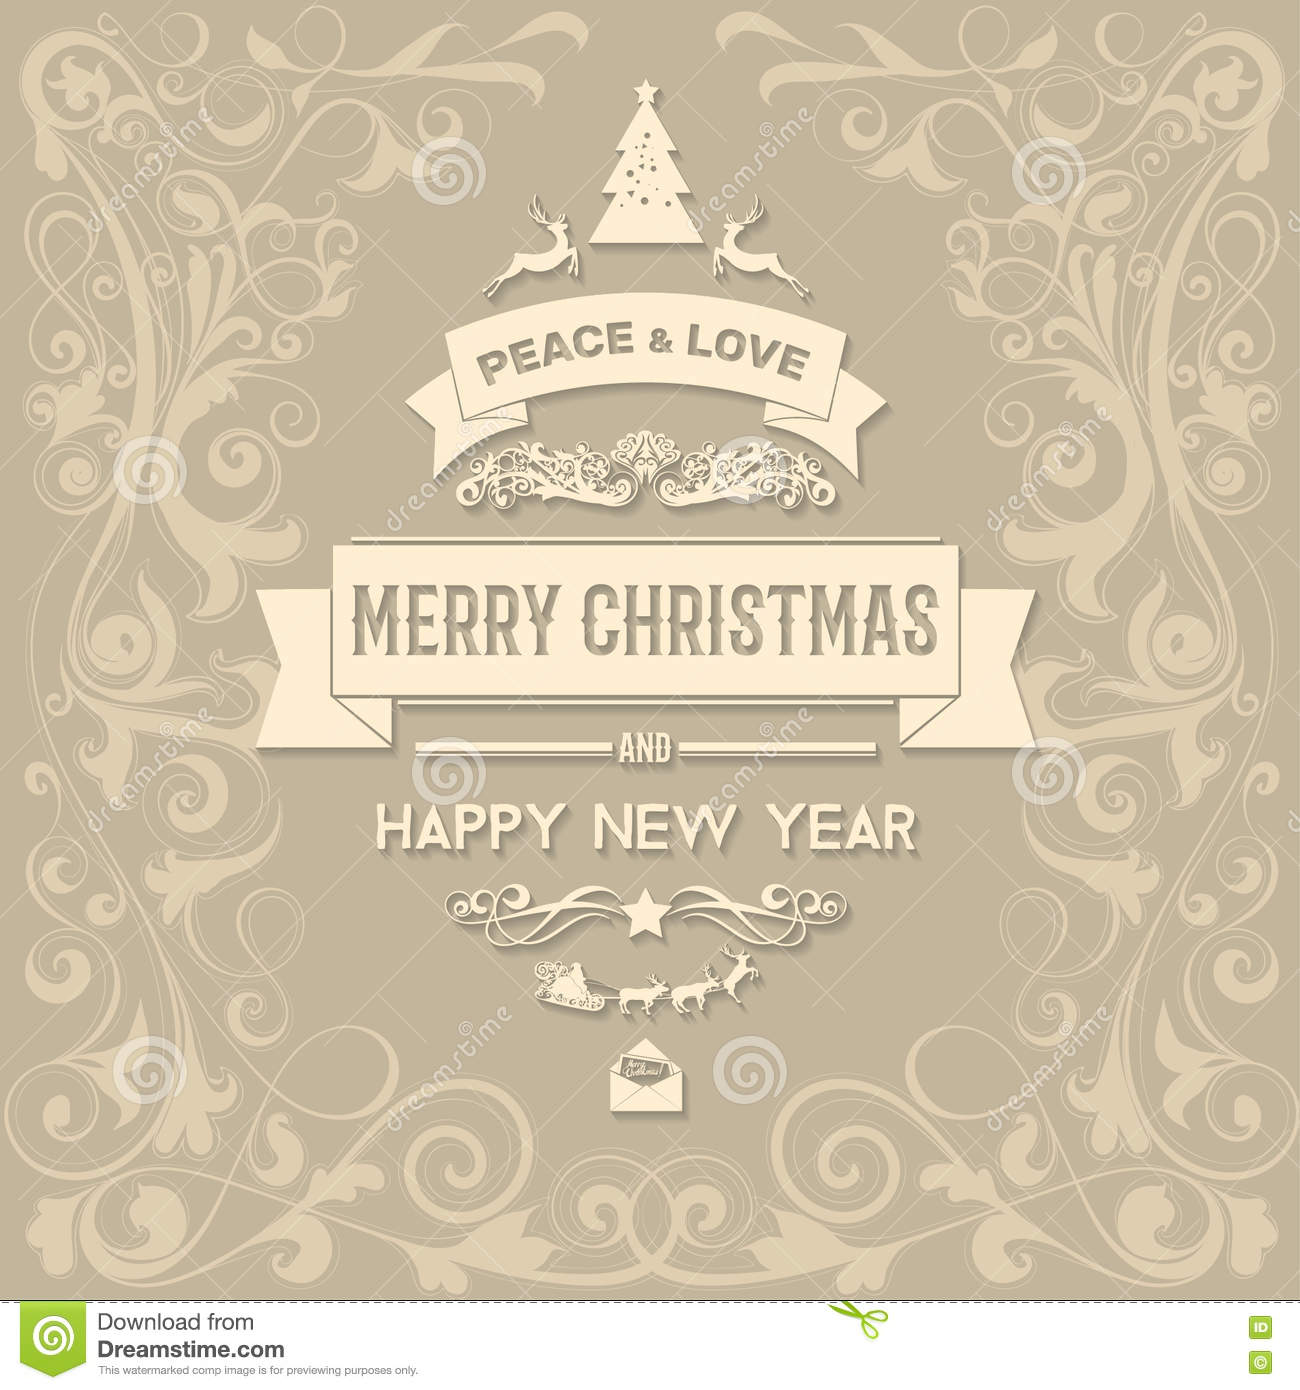 Merry Christmas And Happy New Year Greetings Card Stock Illustration